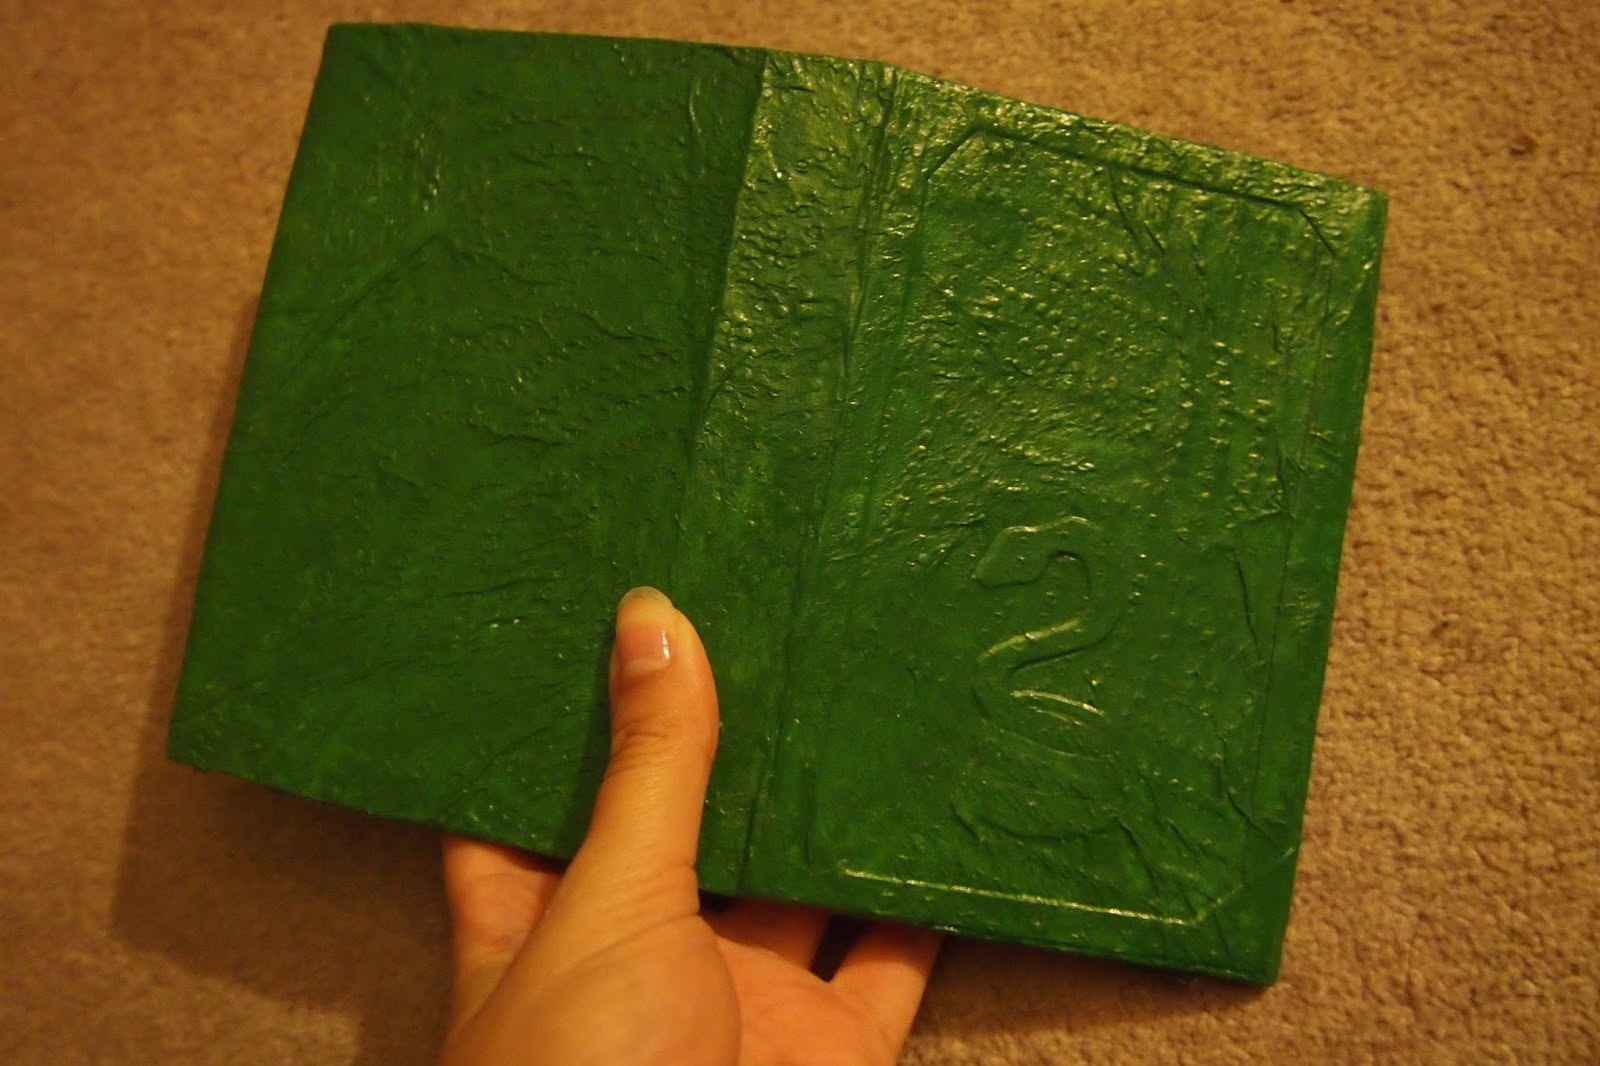 How To Make A Leather Book Cover ~ World turn d upside down how to make faux leather book covers